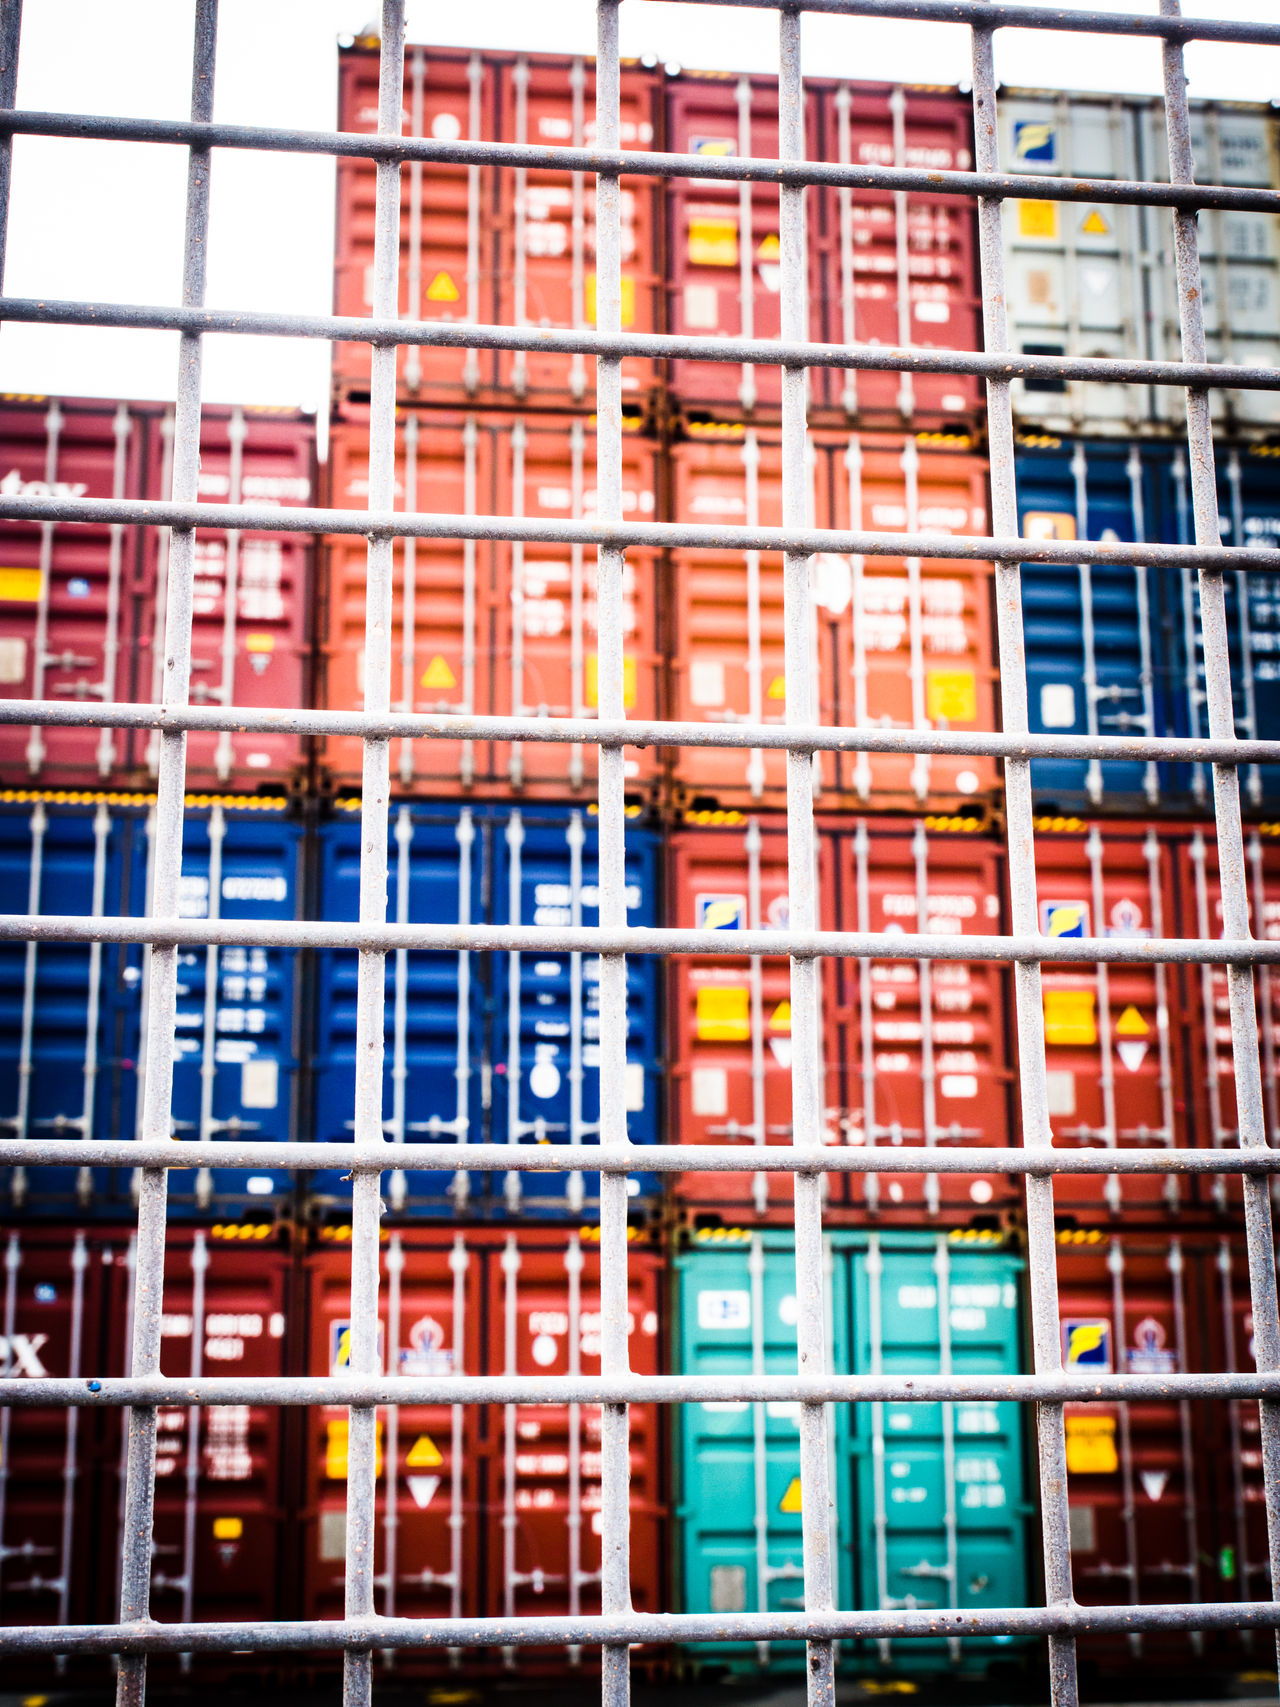 Shipping containers at port Containers Fence Freight Transportation Metal Fence Port Shipping  Shipping Containers Shipping Docks Stacked